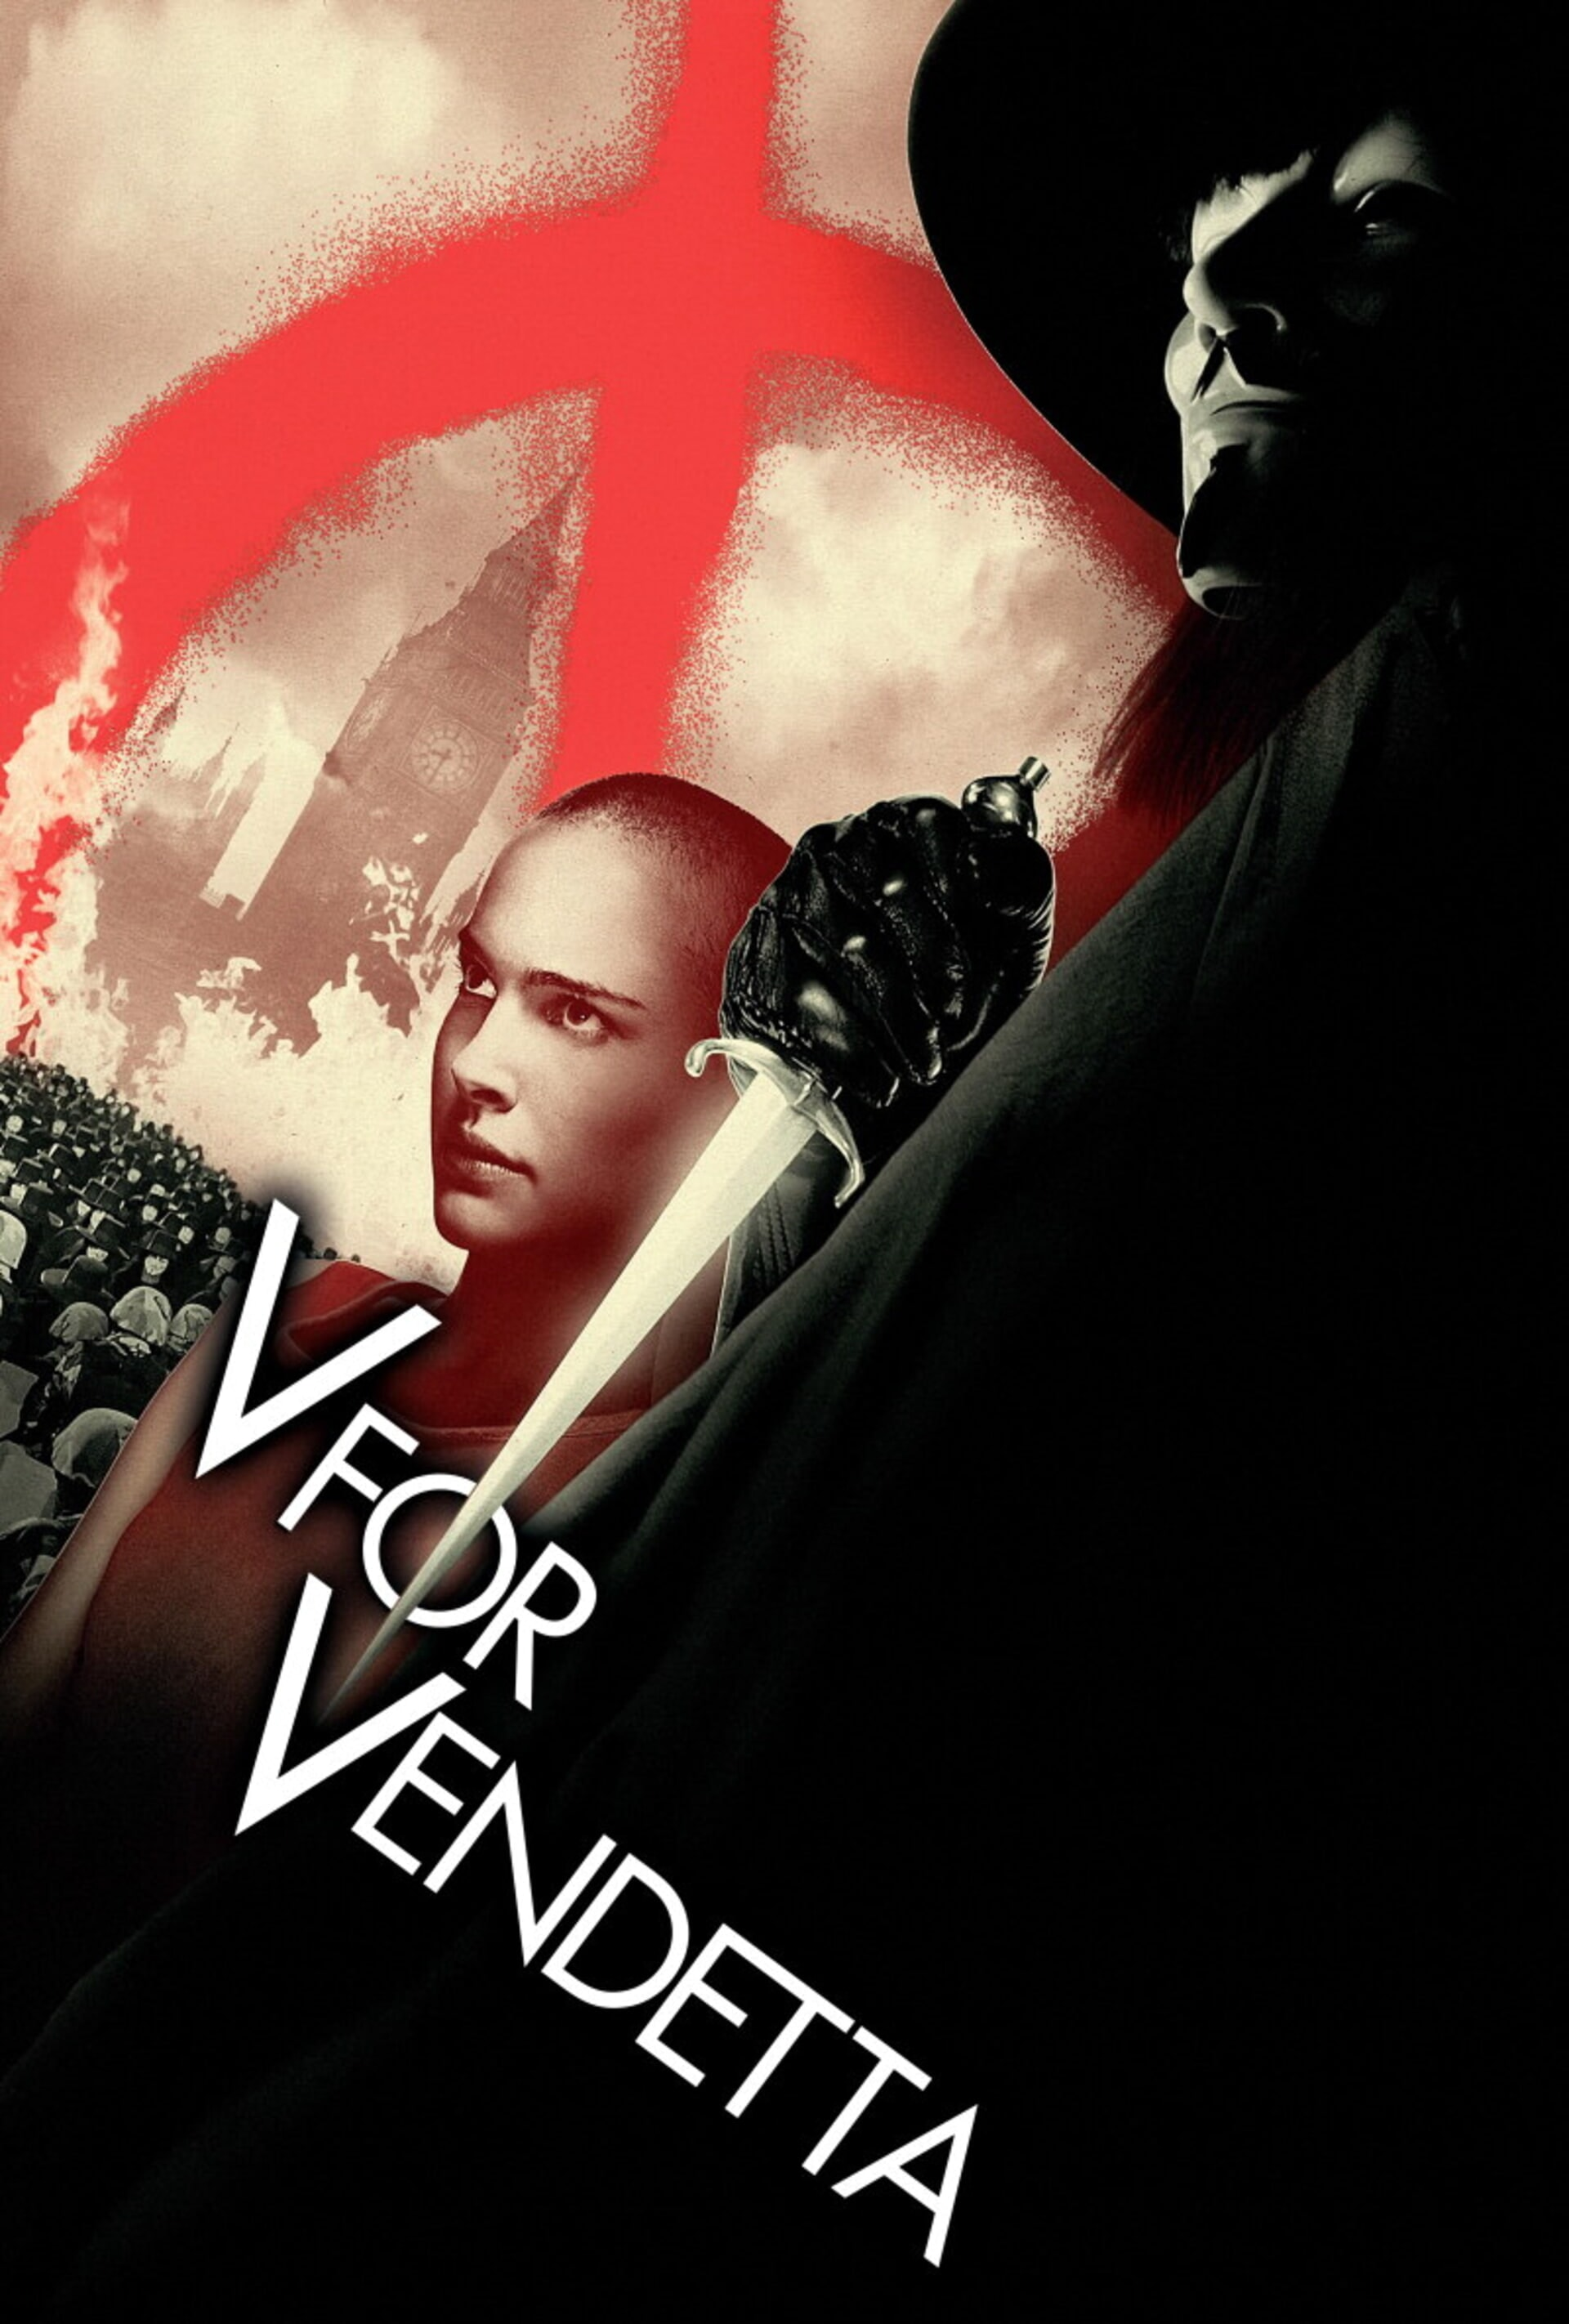 V for Vendetta - Poster 1